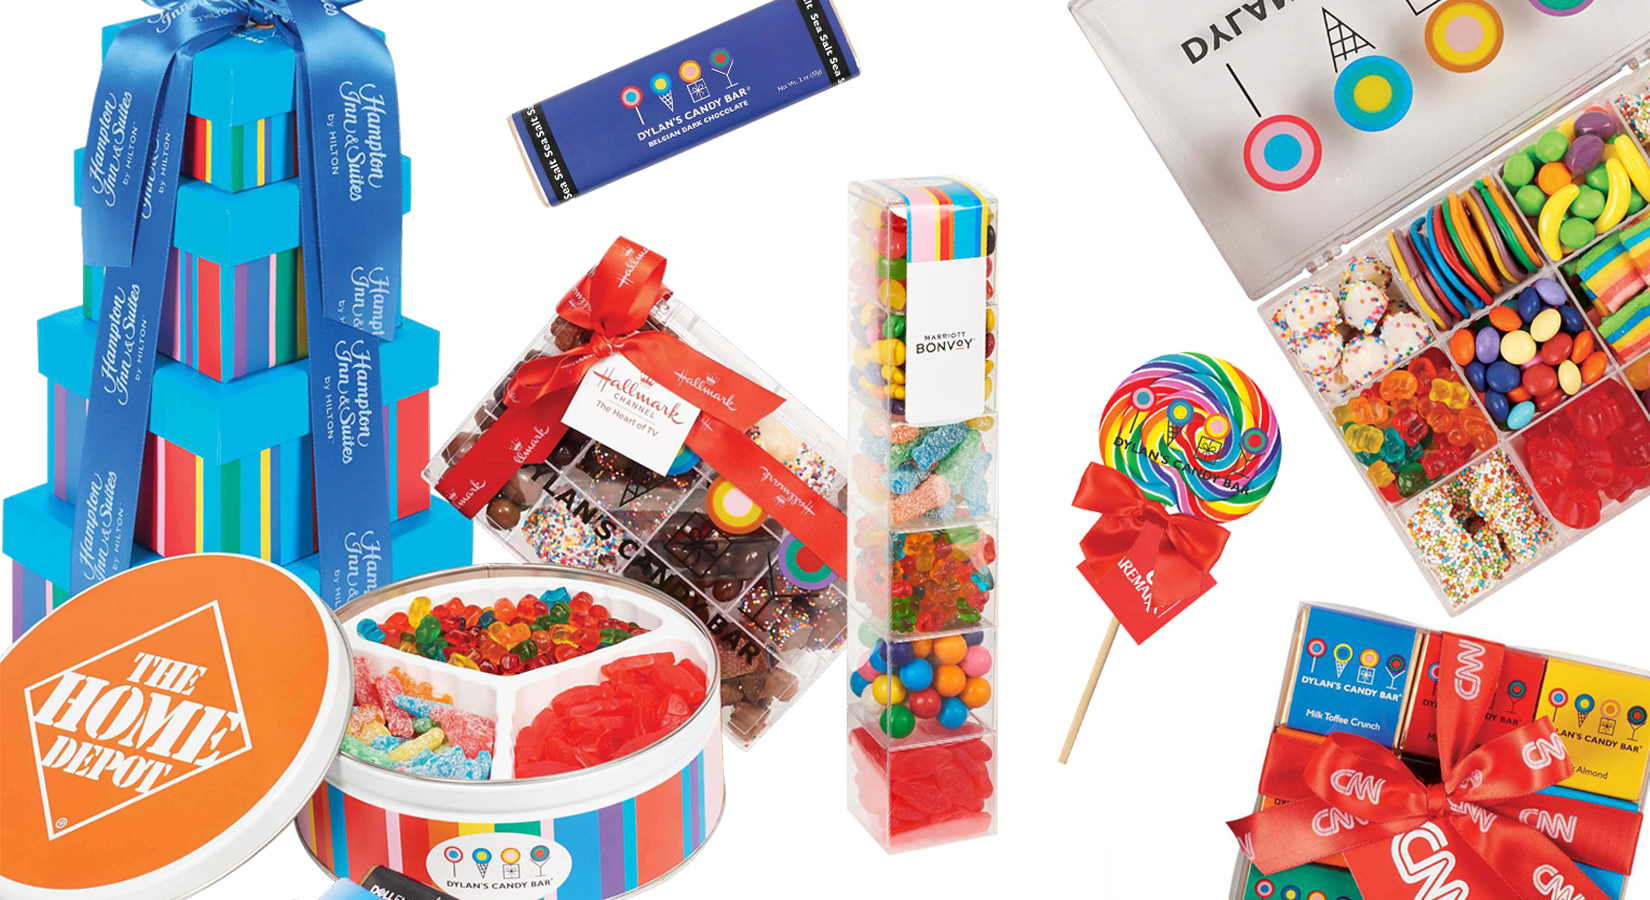 *Now Offering* Dylan's Candy Bar Signature Items!